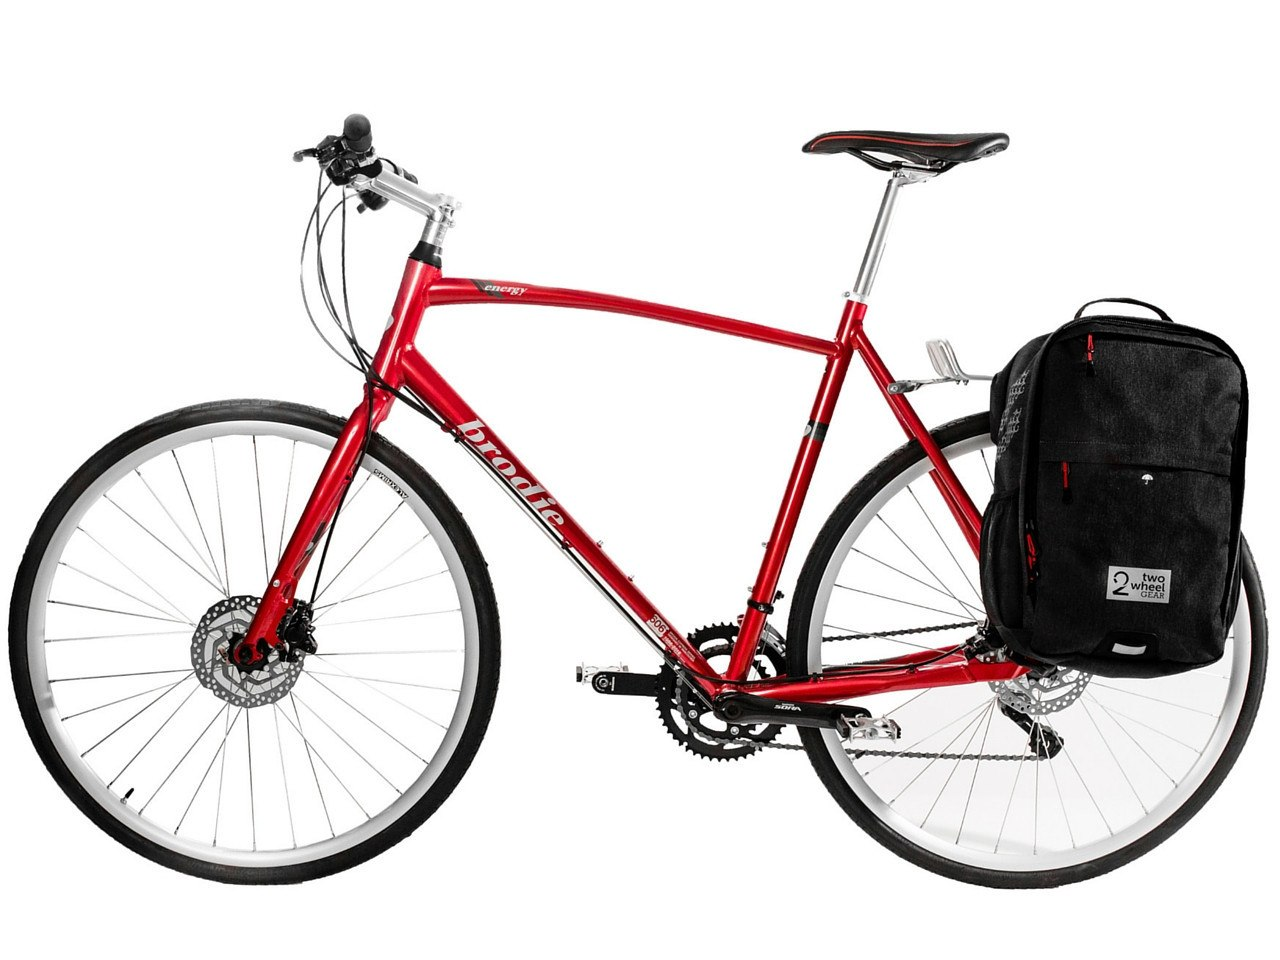 Bags - Pannier Backpack Convertible - Black on Bike